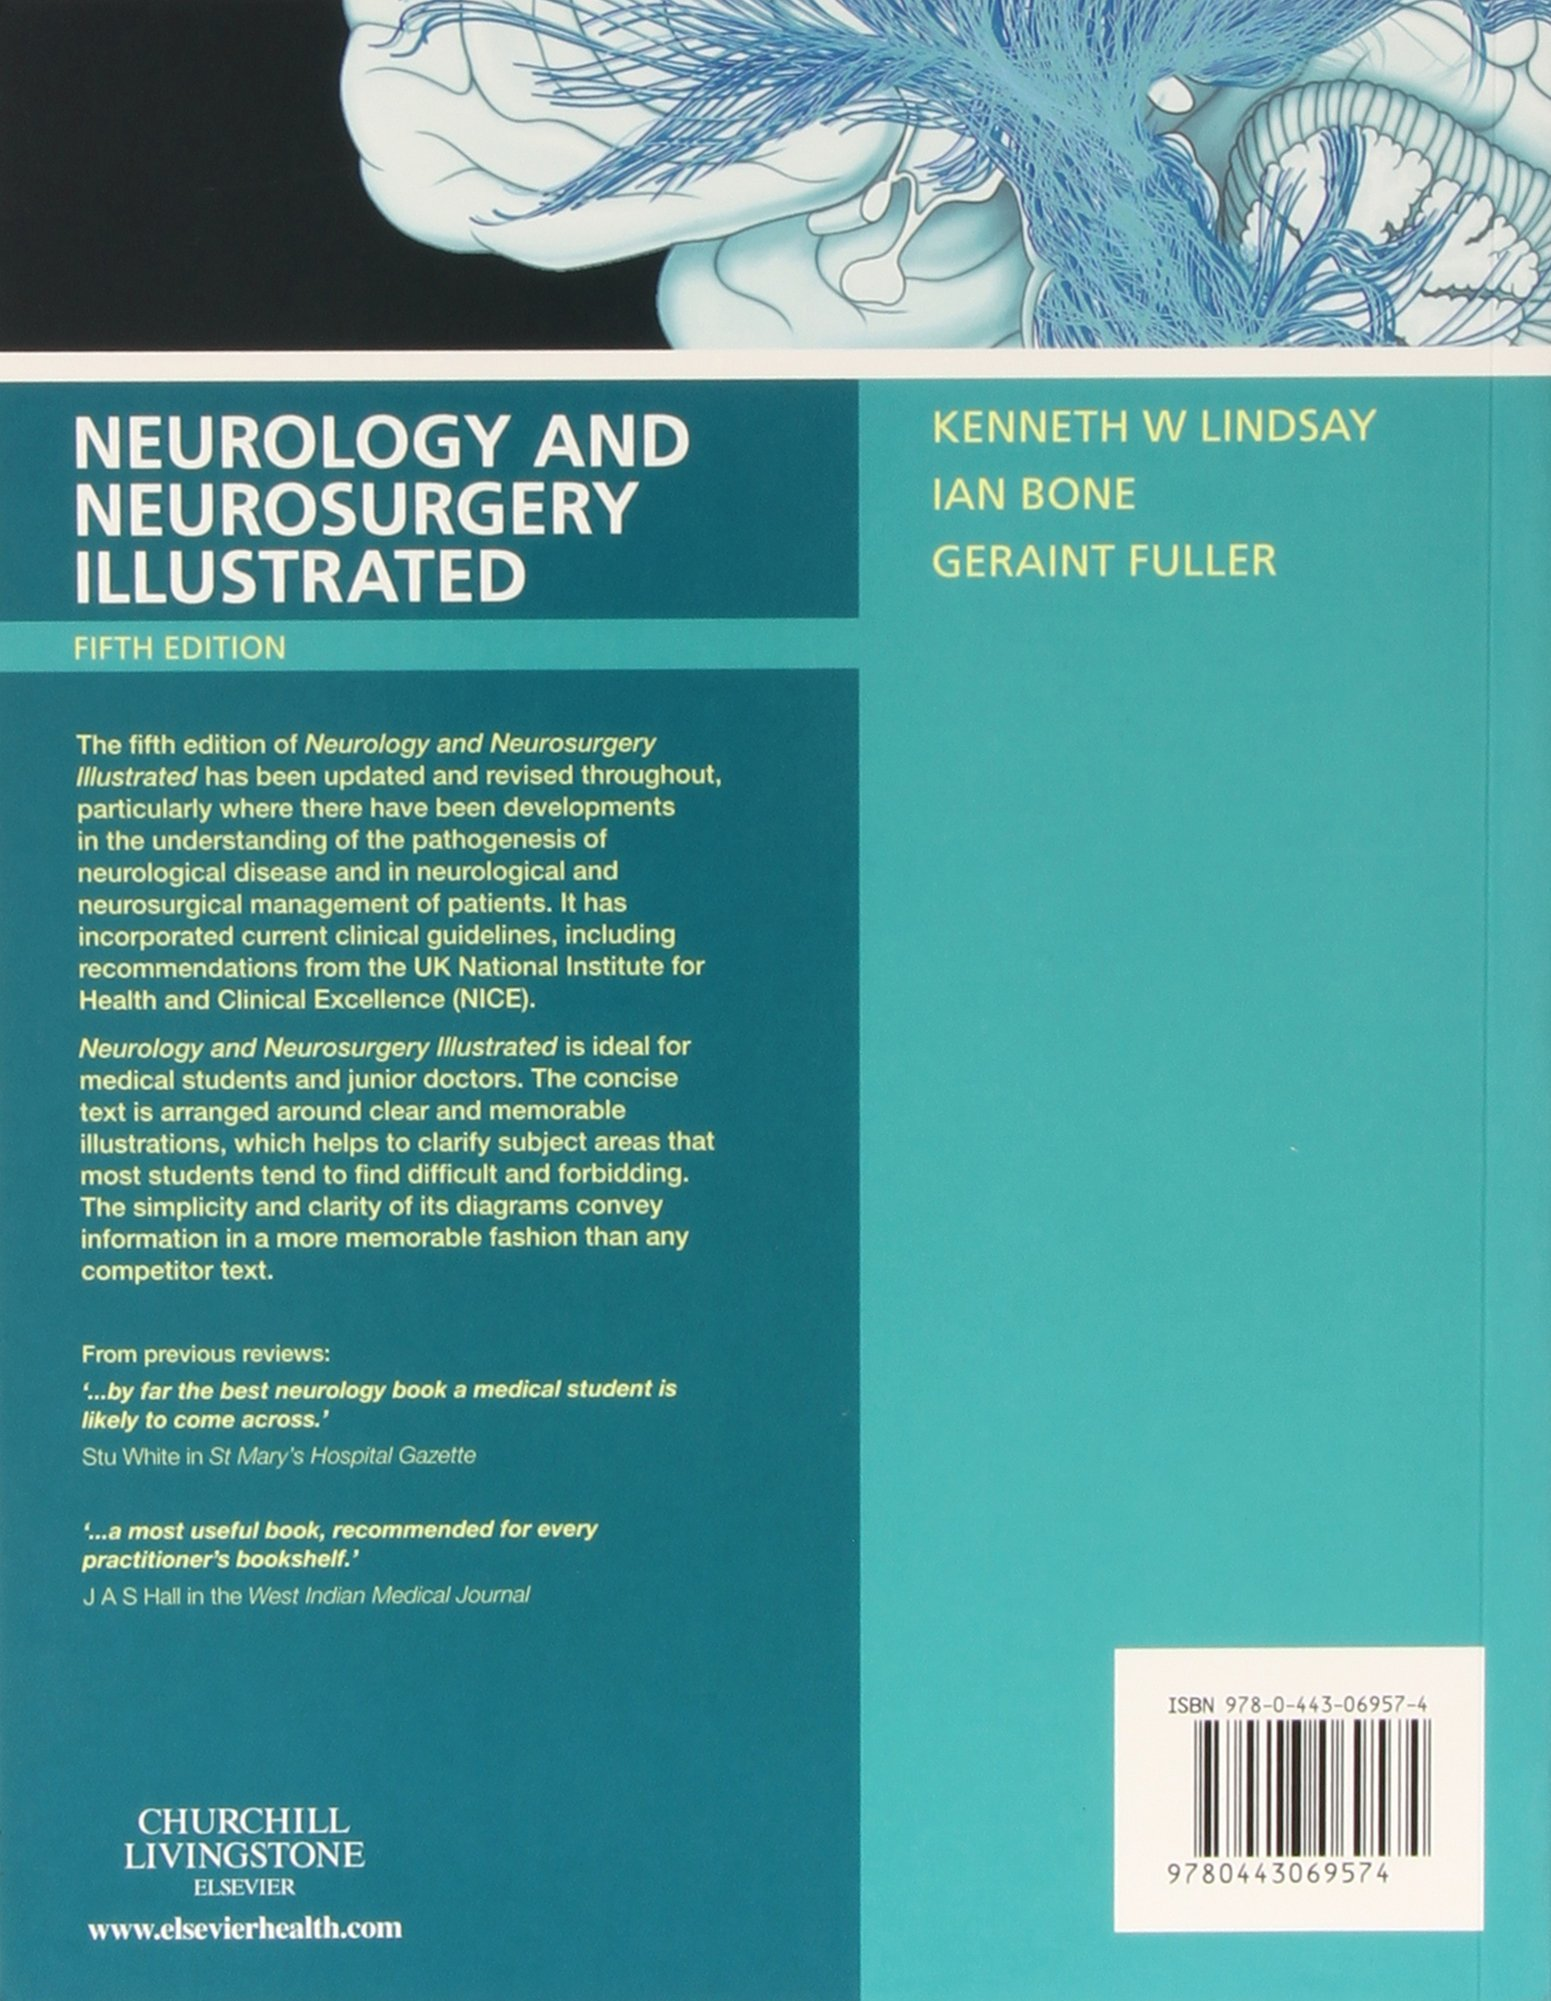 neurology and neurosurgery illustrated 5th edition torrent